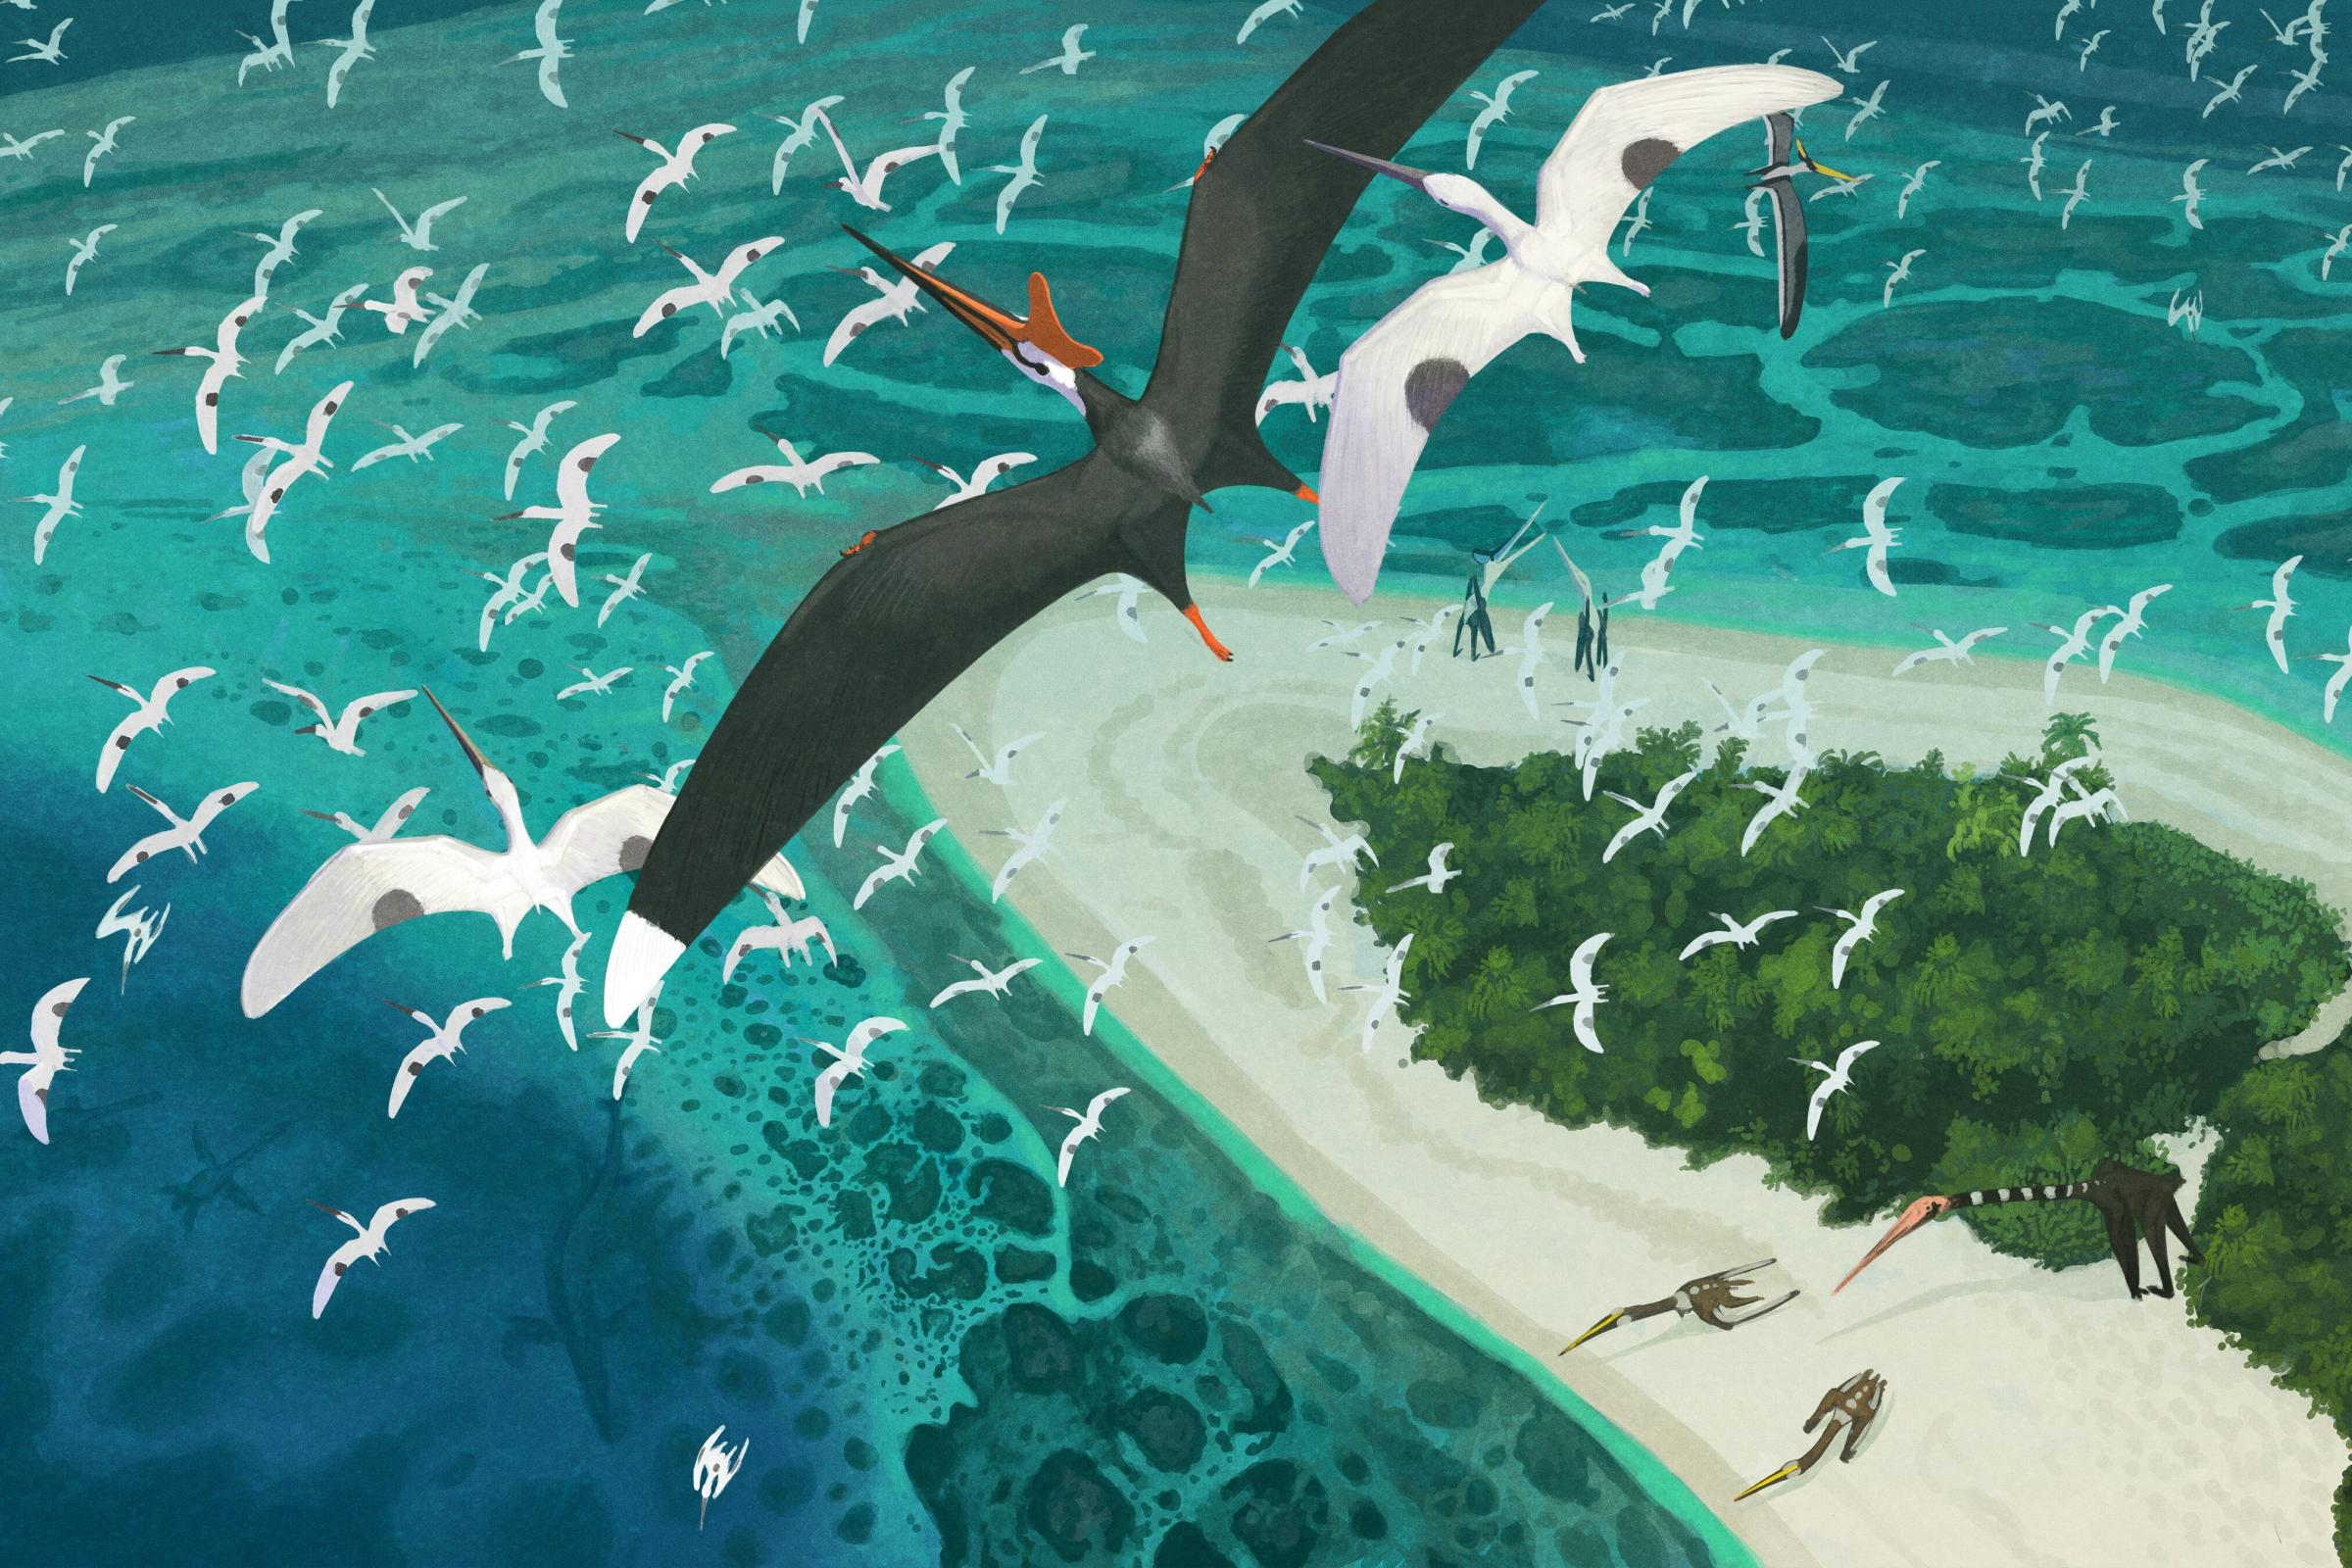 Artist's impression of pterosaurs in flight (John Conway/PA)